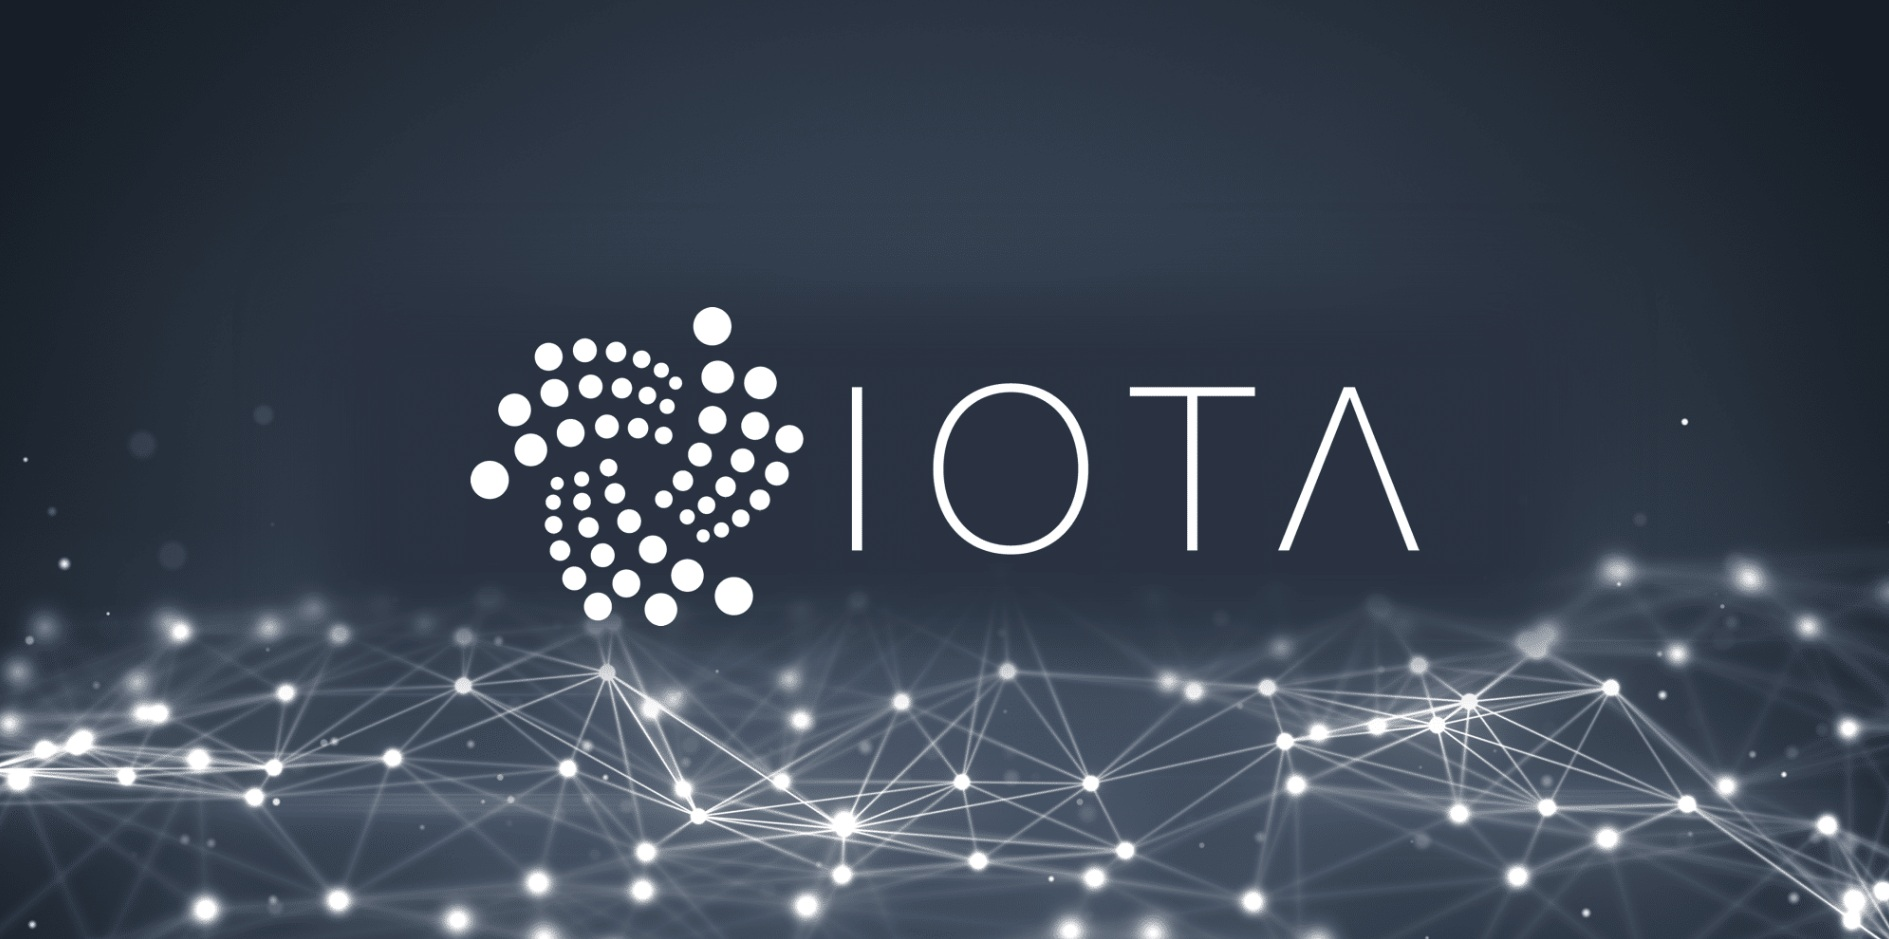 Earning IOTA by selling your stuff